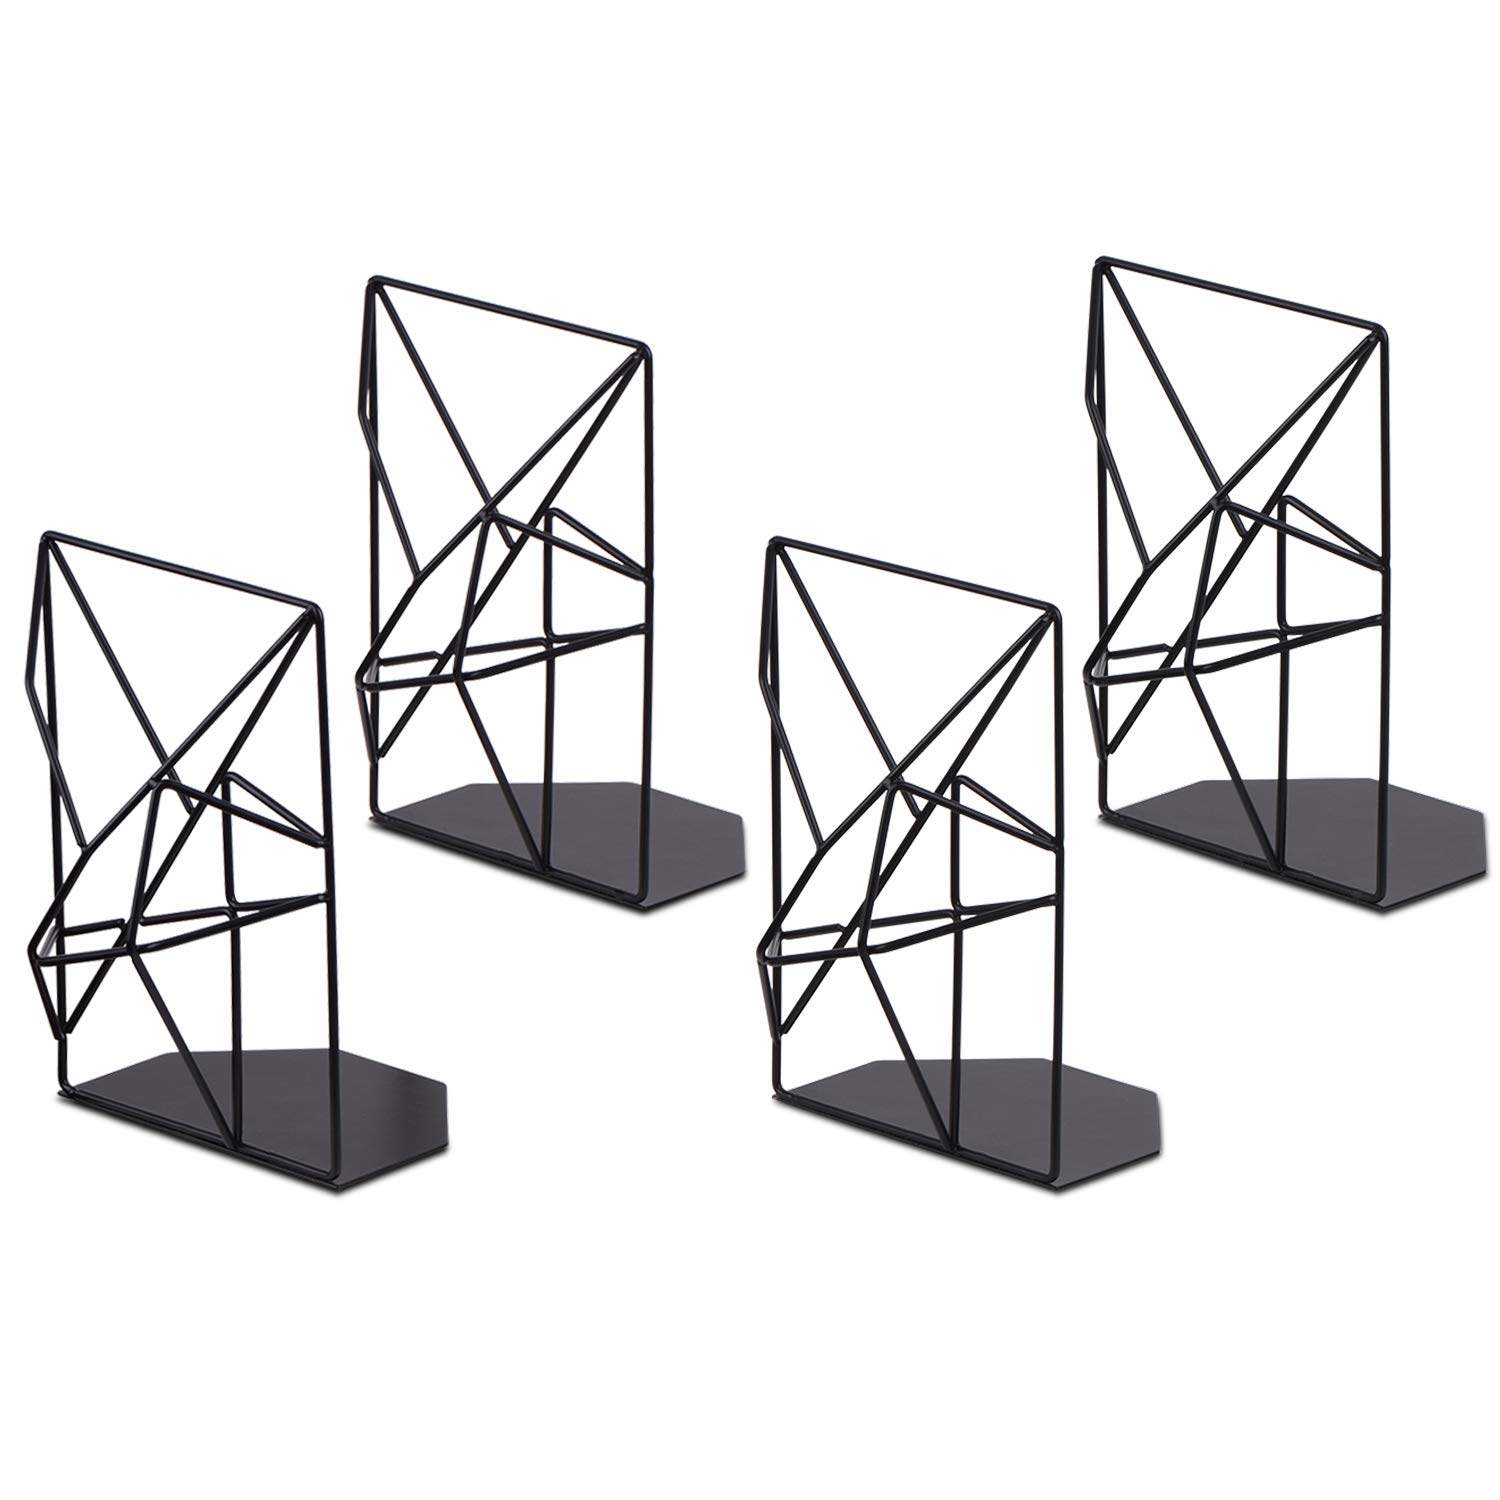 SRIWATANA Book Ends Black, Decorative Metal Bookends for Shelves, Unique Geometric Design, Non-Scratching(2 Pairs)